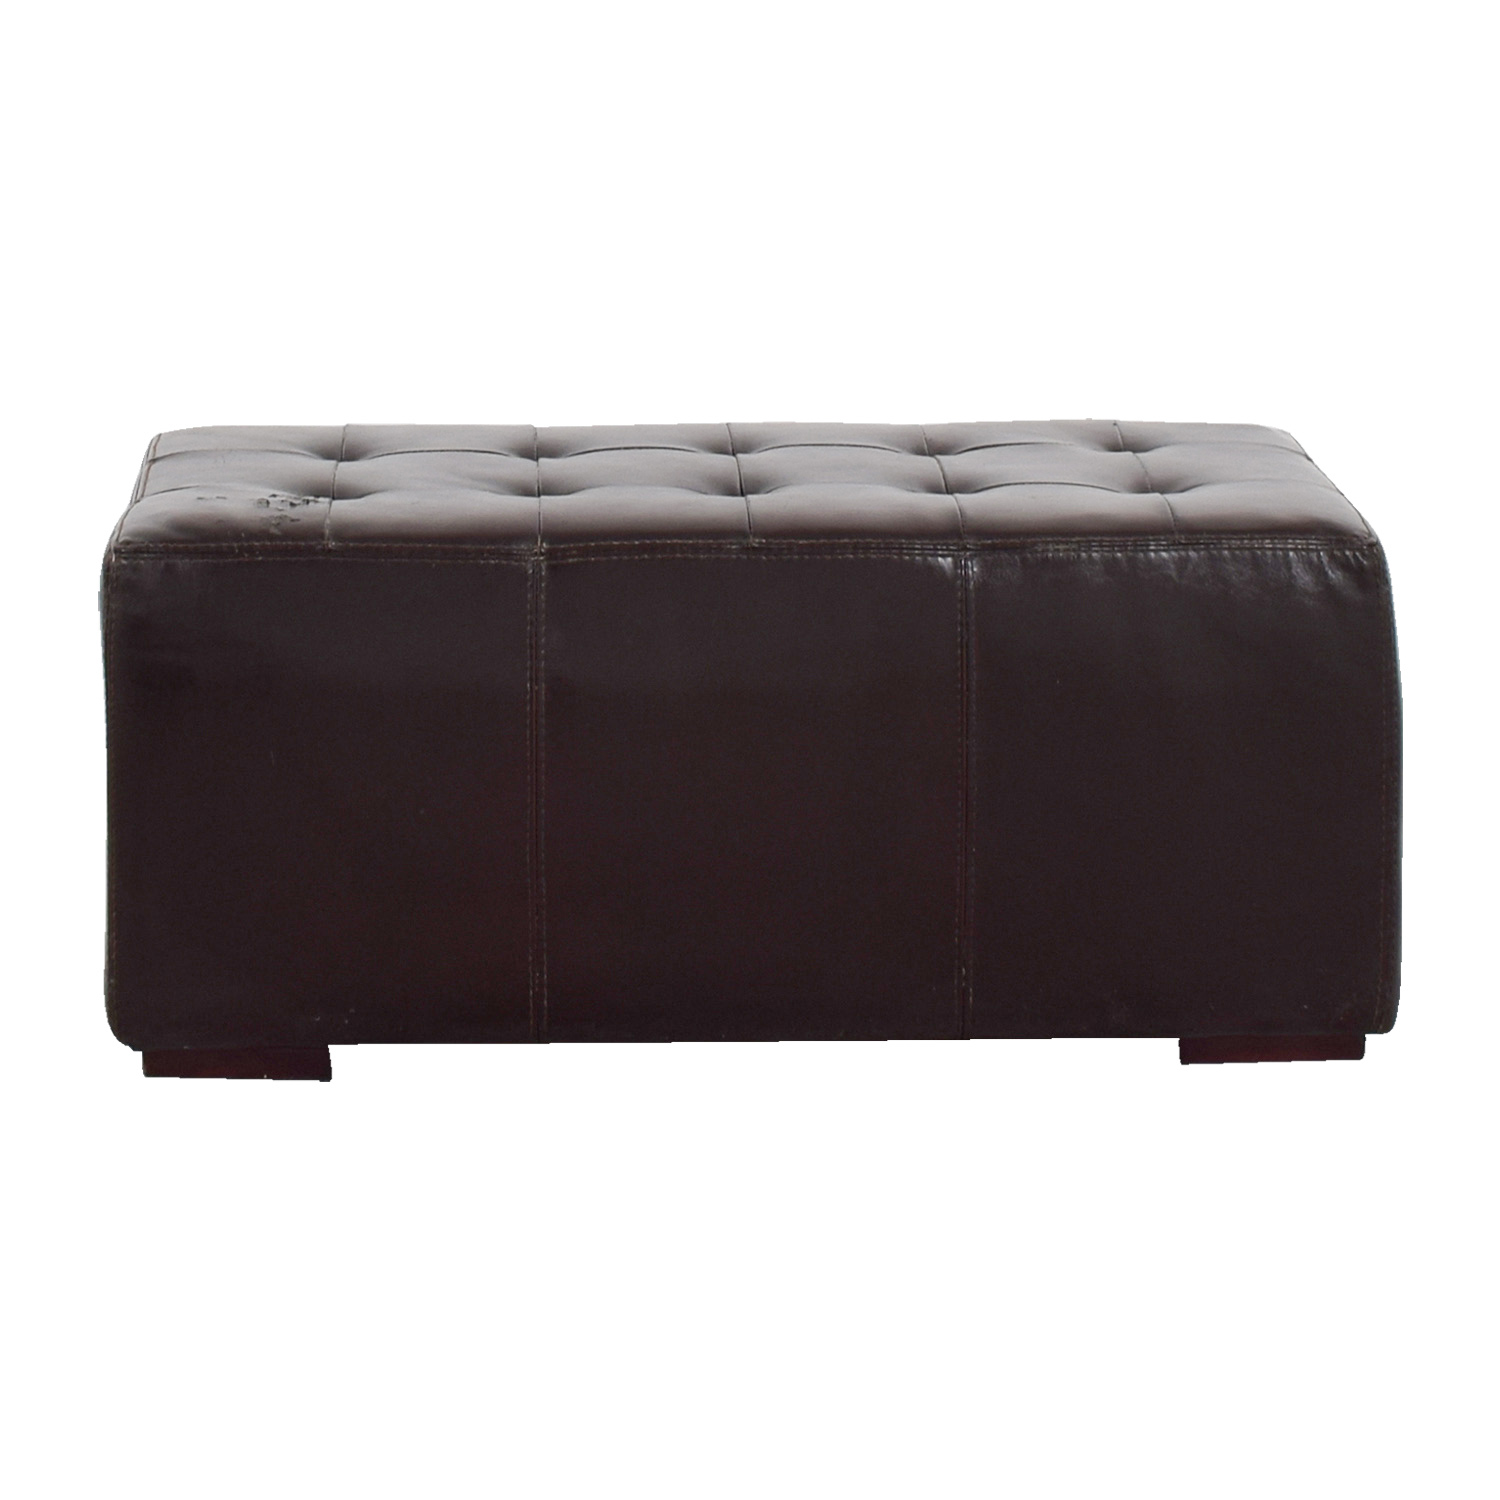 IKEA IKEA Brown Leather Tufted Ottoman on sale